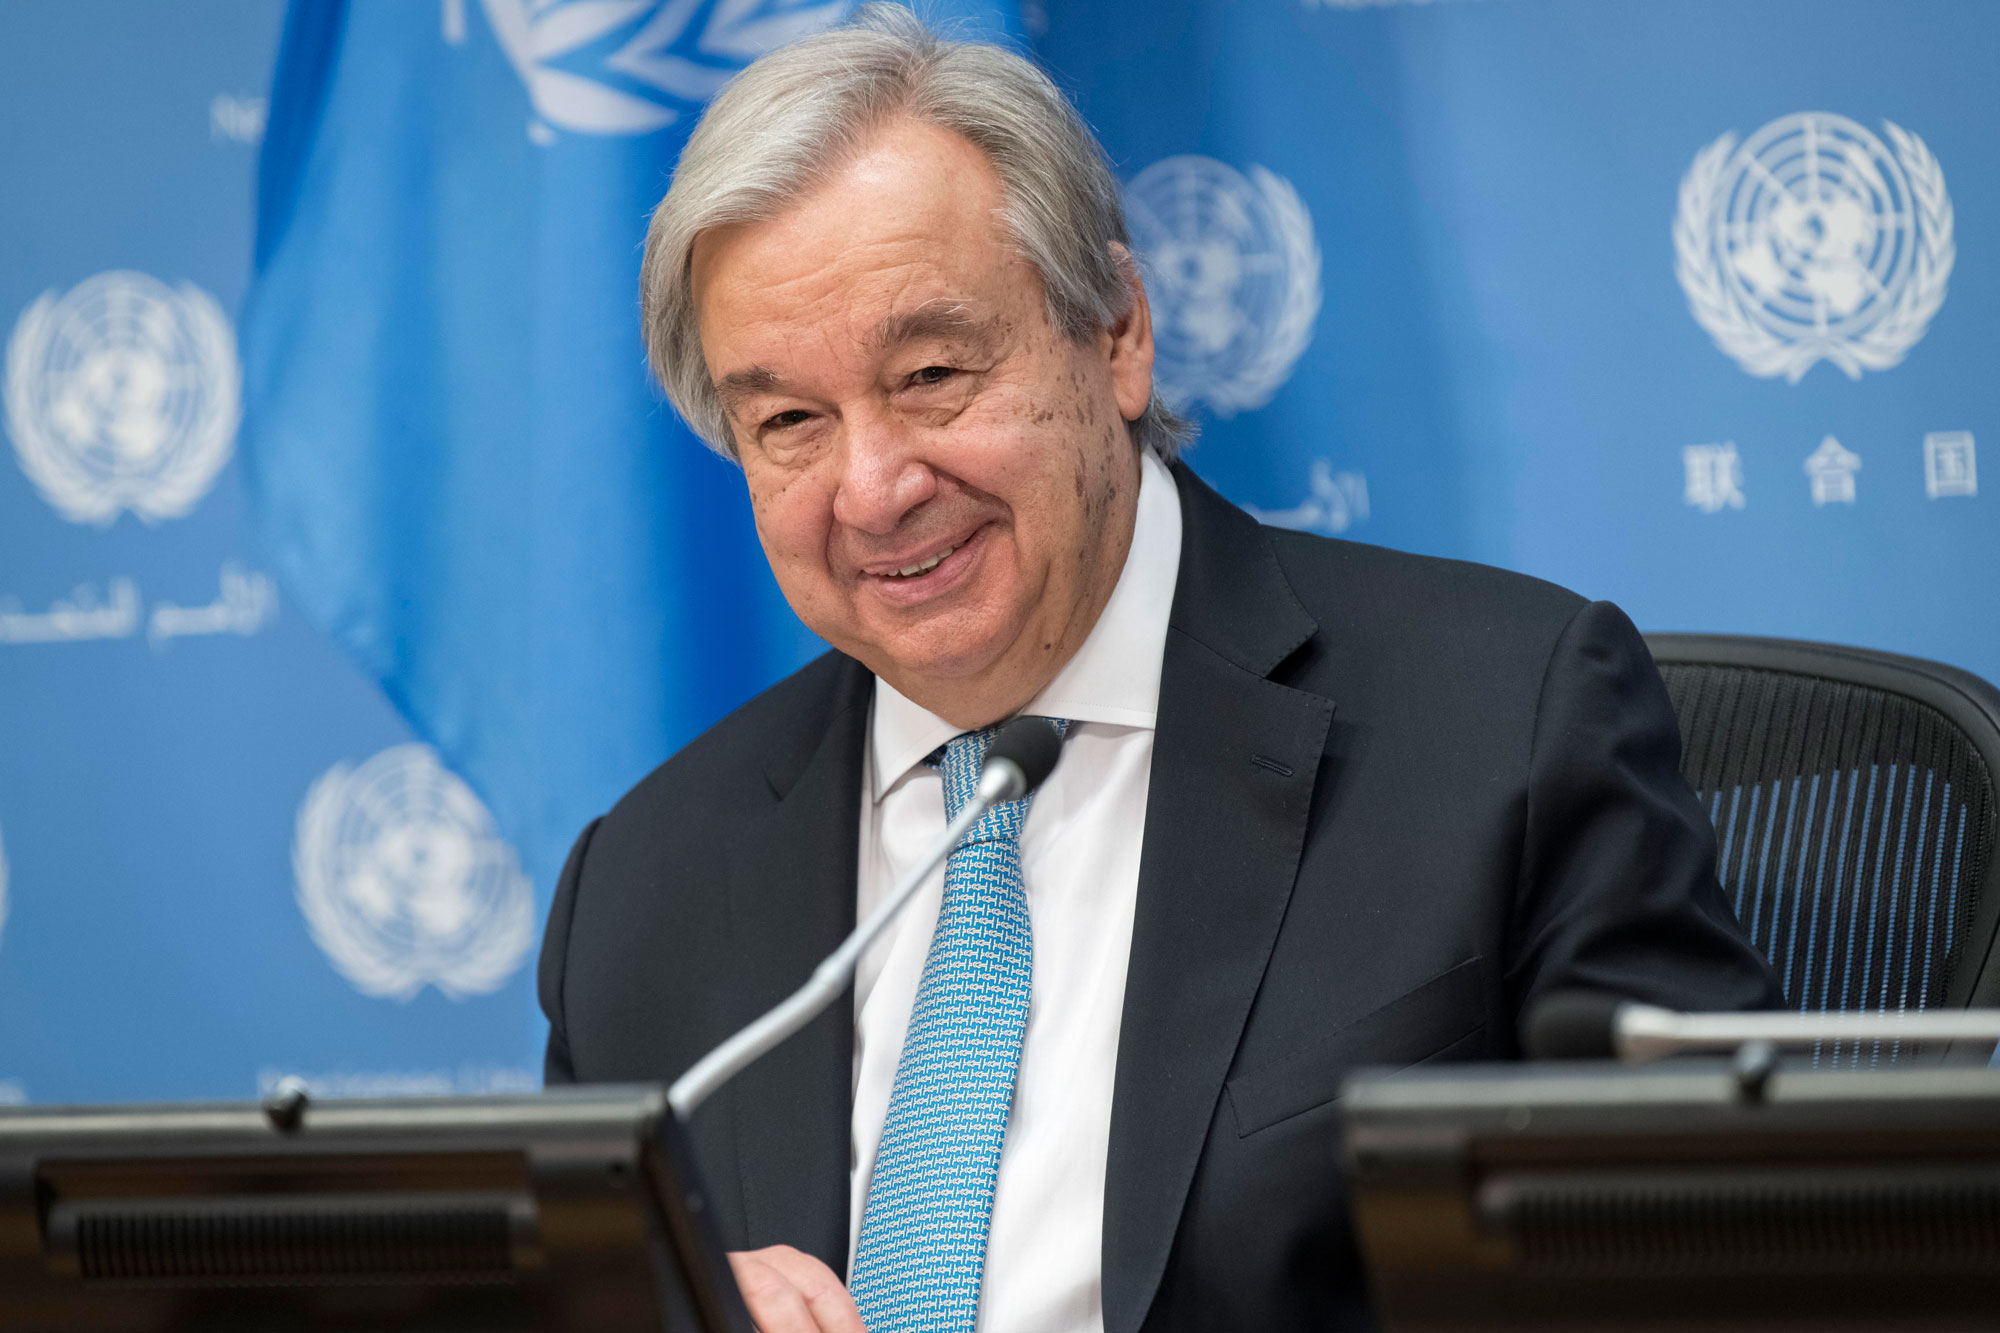 Secretary-General António Guterres briefs reporters on the signing of a ceasefire agreement by the Libyan parties in Geneva under the auspices of the United Nations. UN Photo/Mark Garten